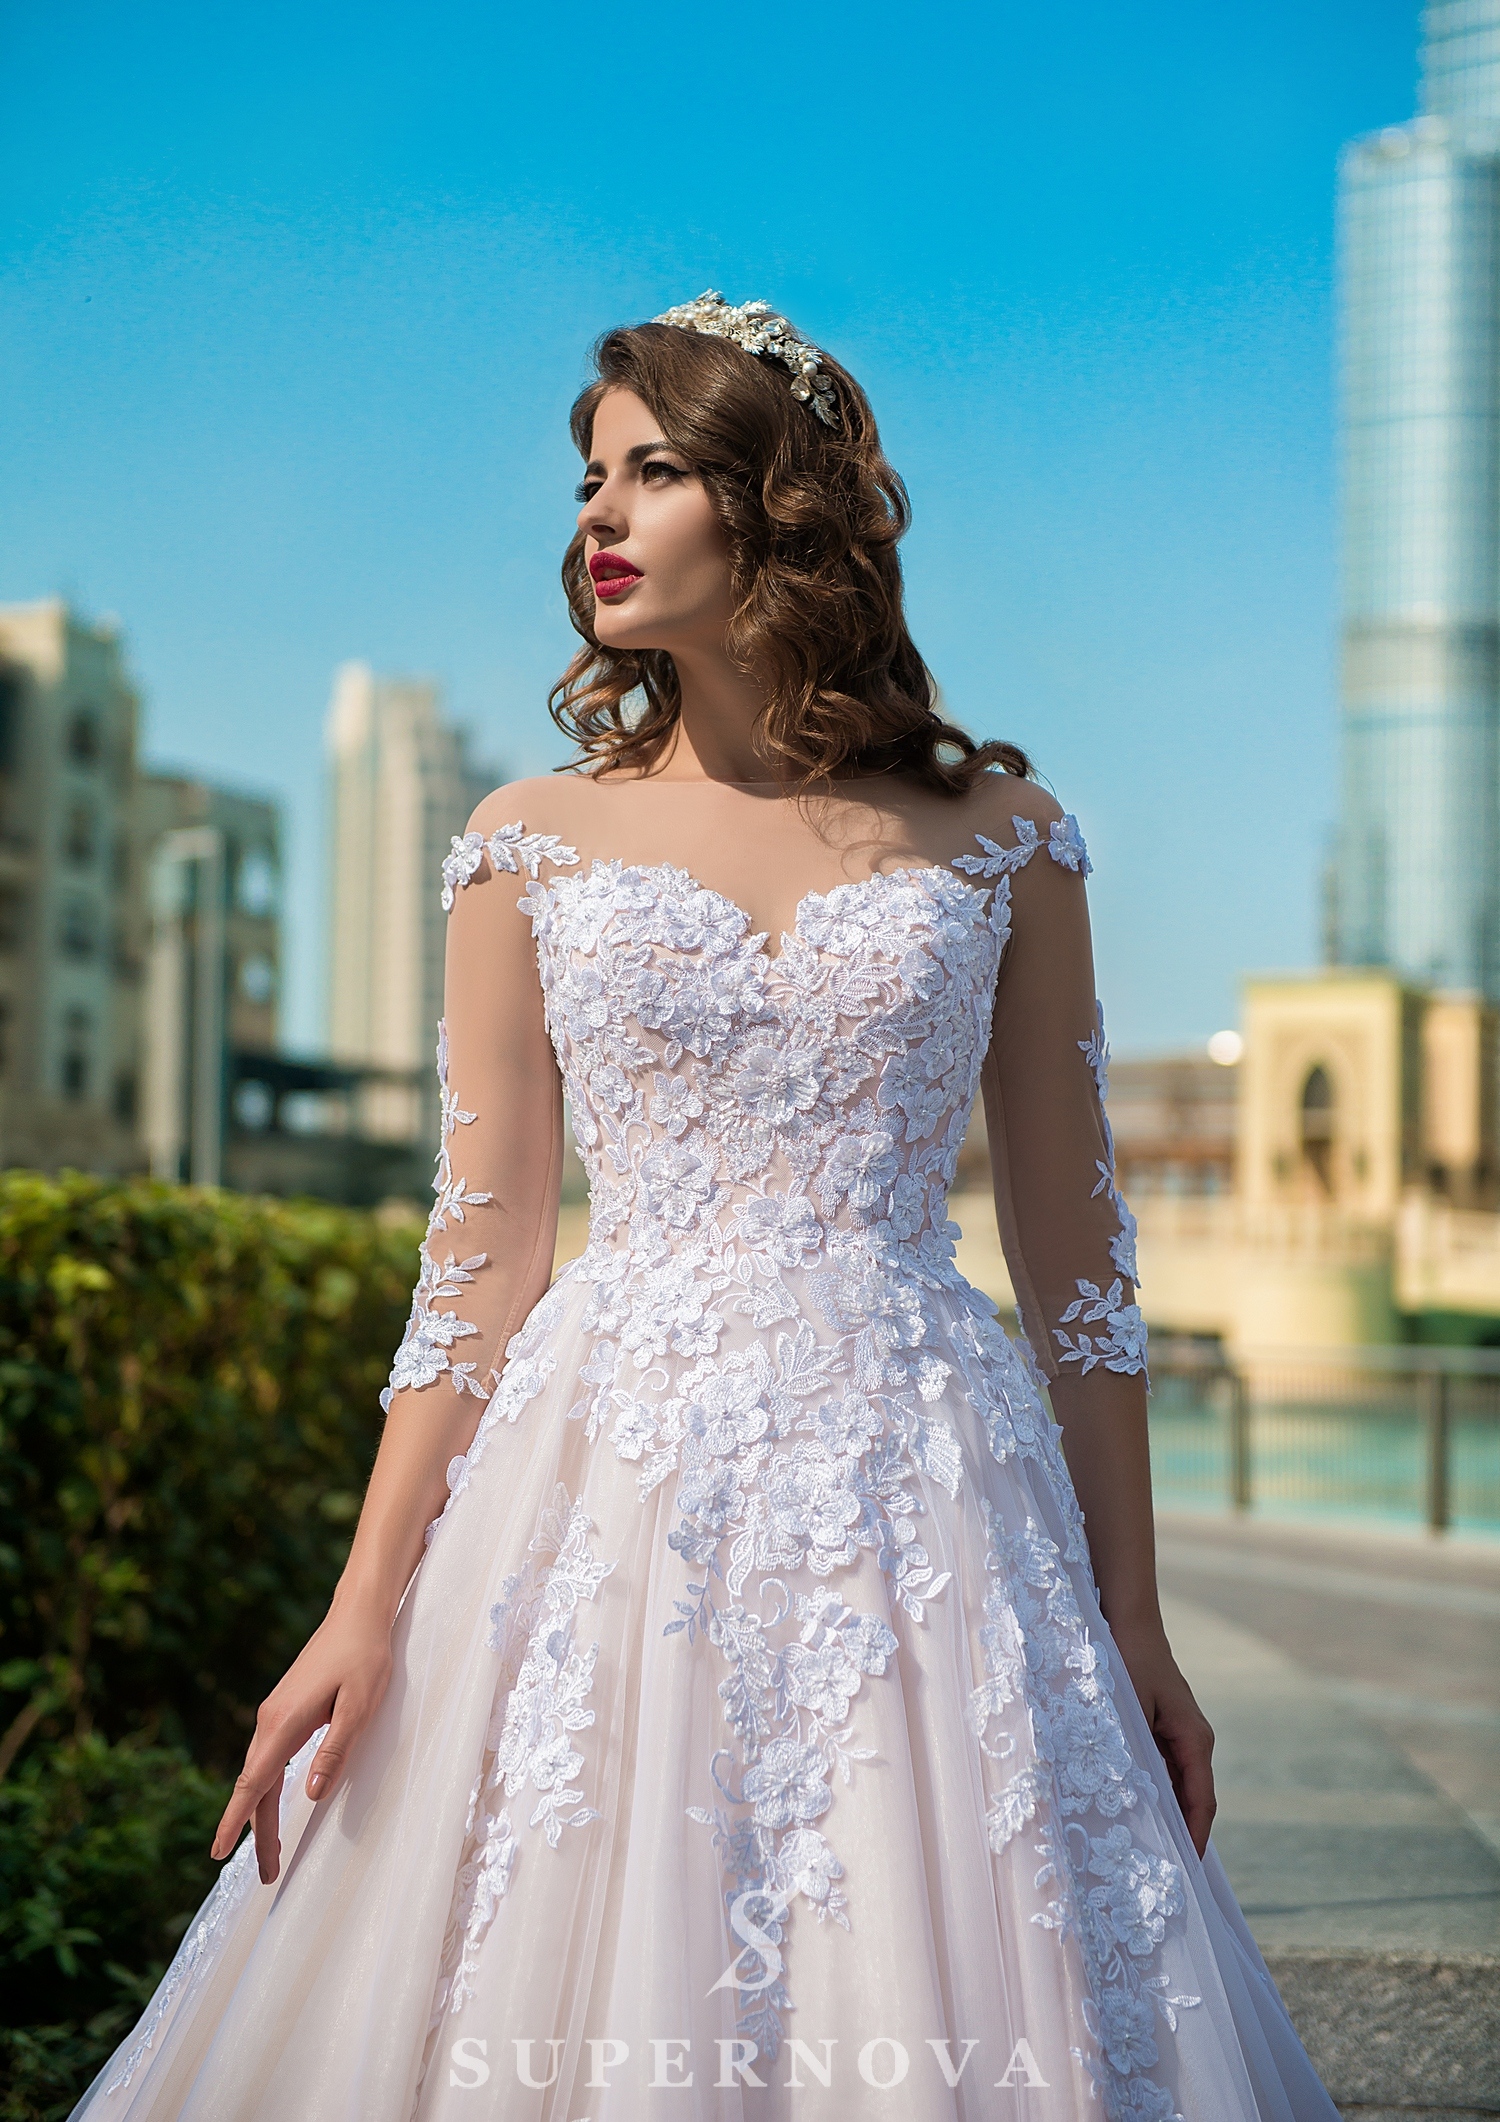 ¾ sleeve wedding dress-1